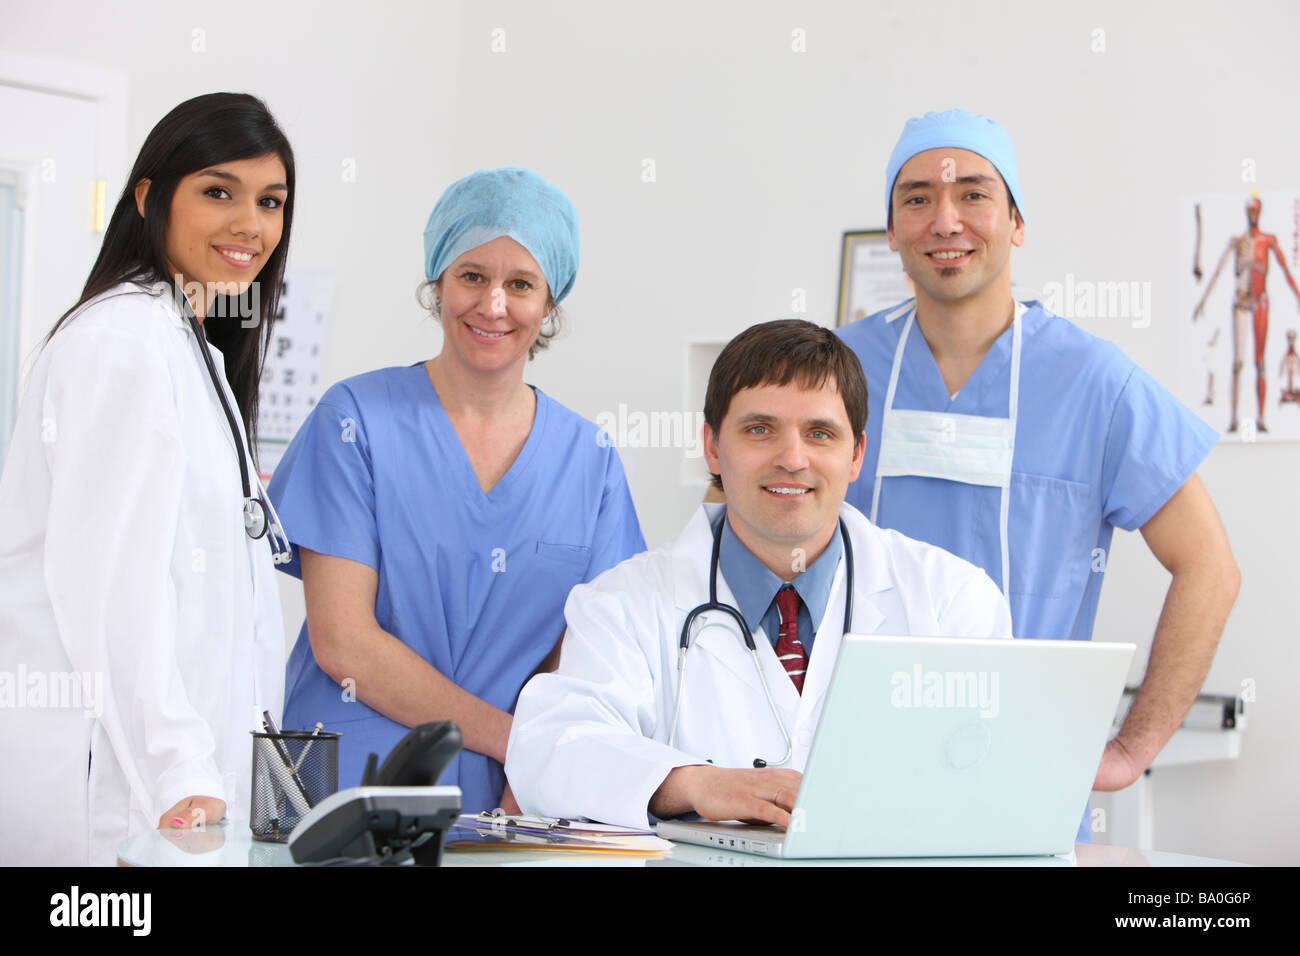 Medical personnel group portriat - Stock Image